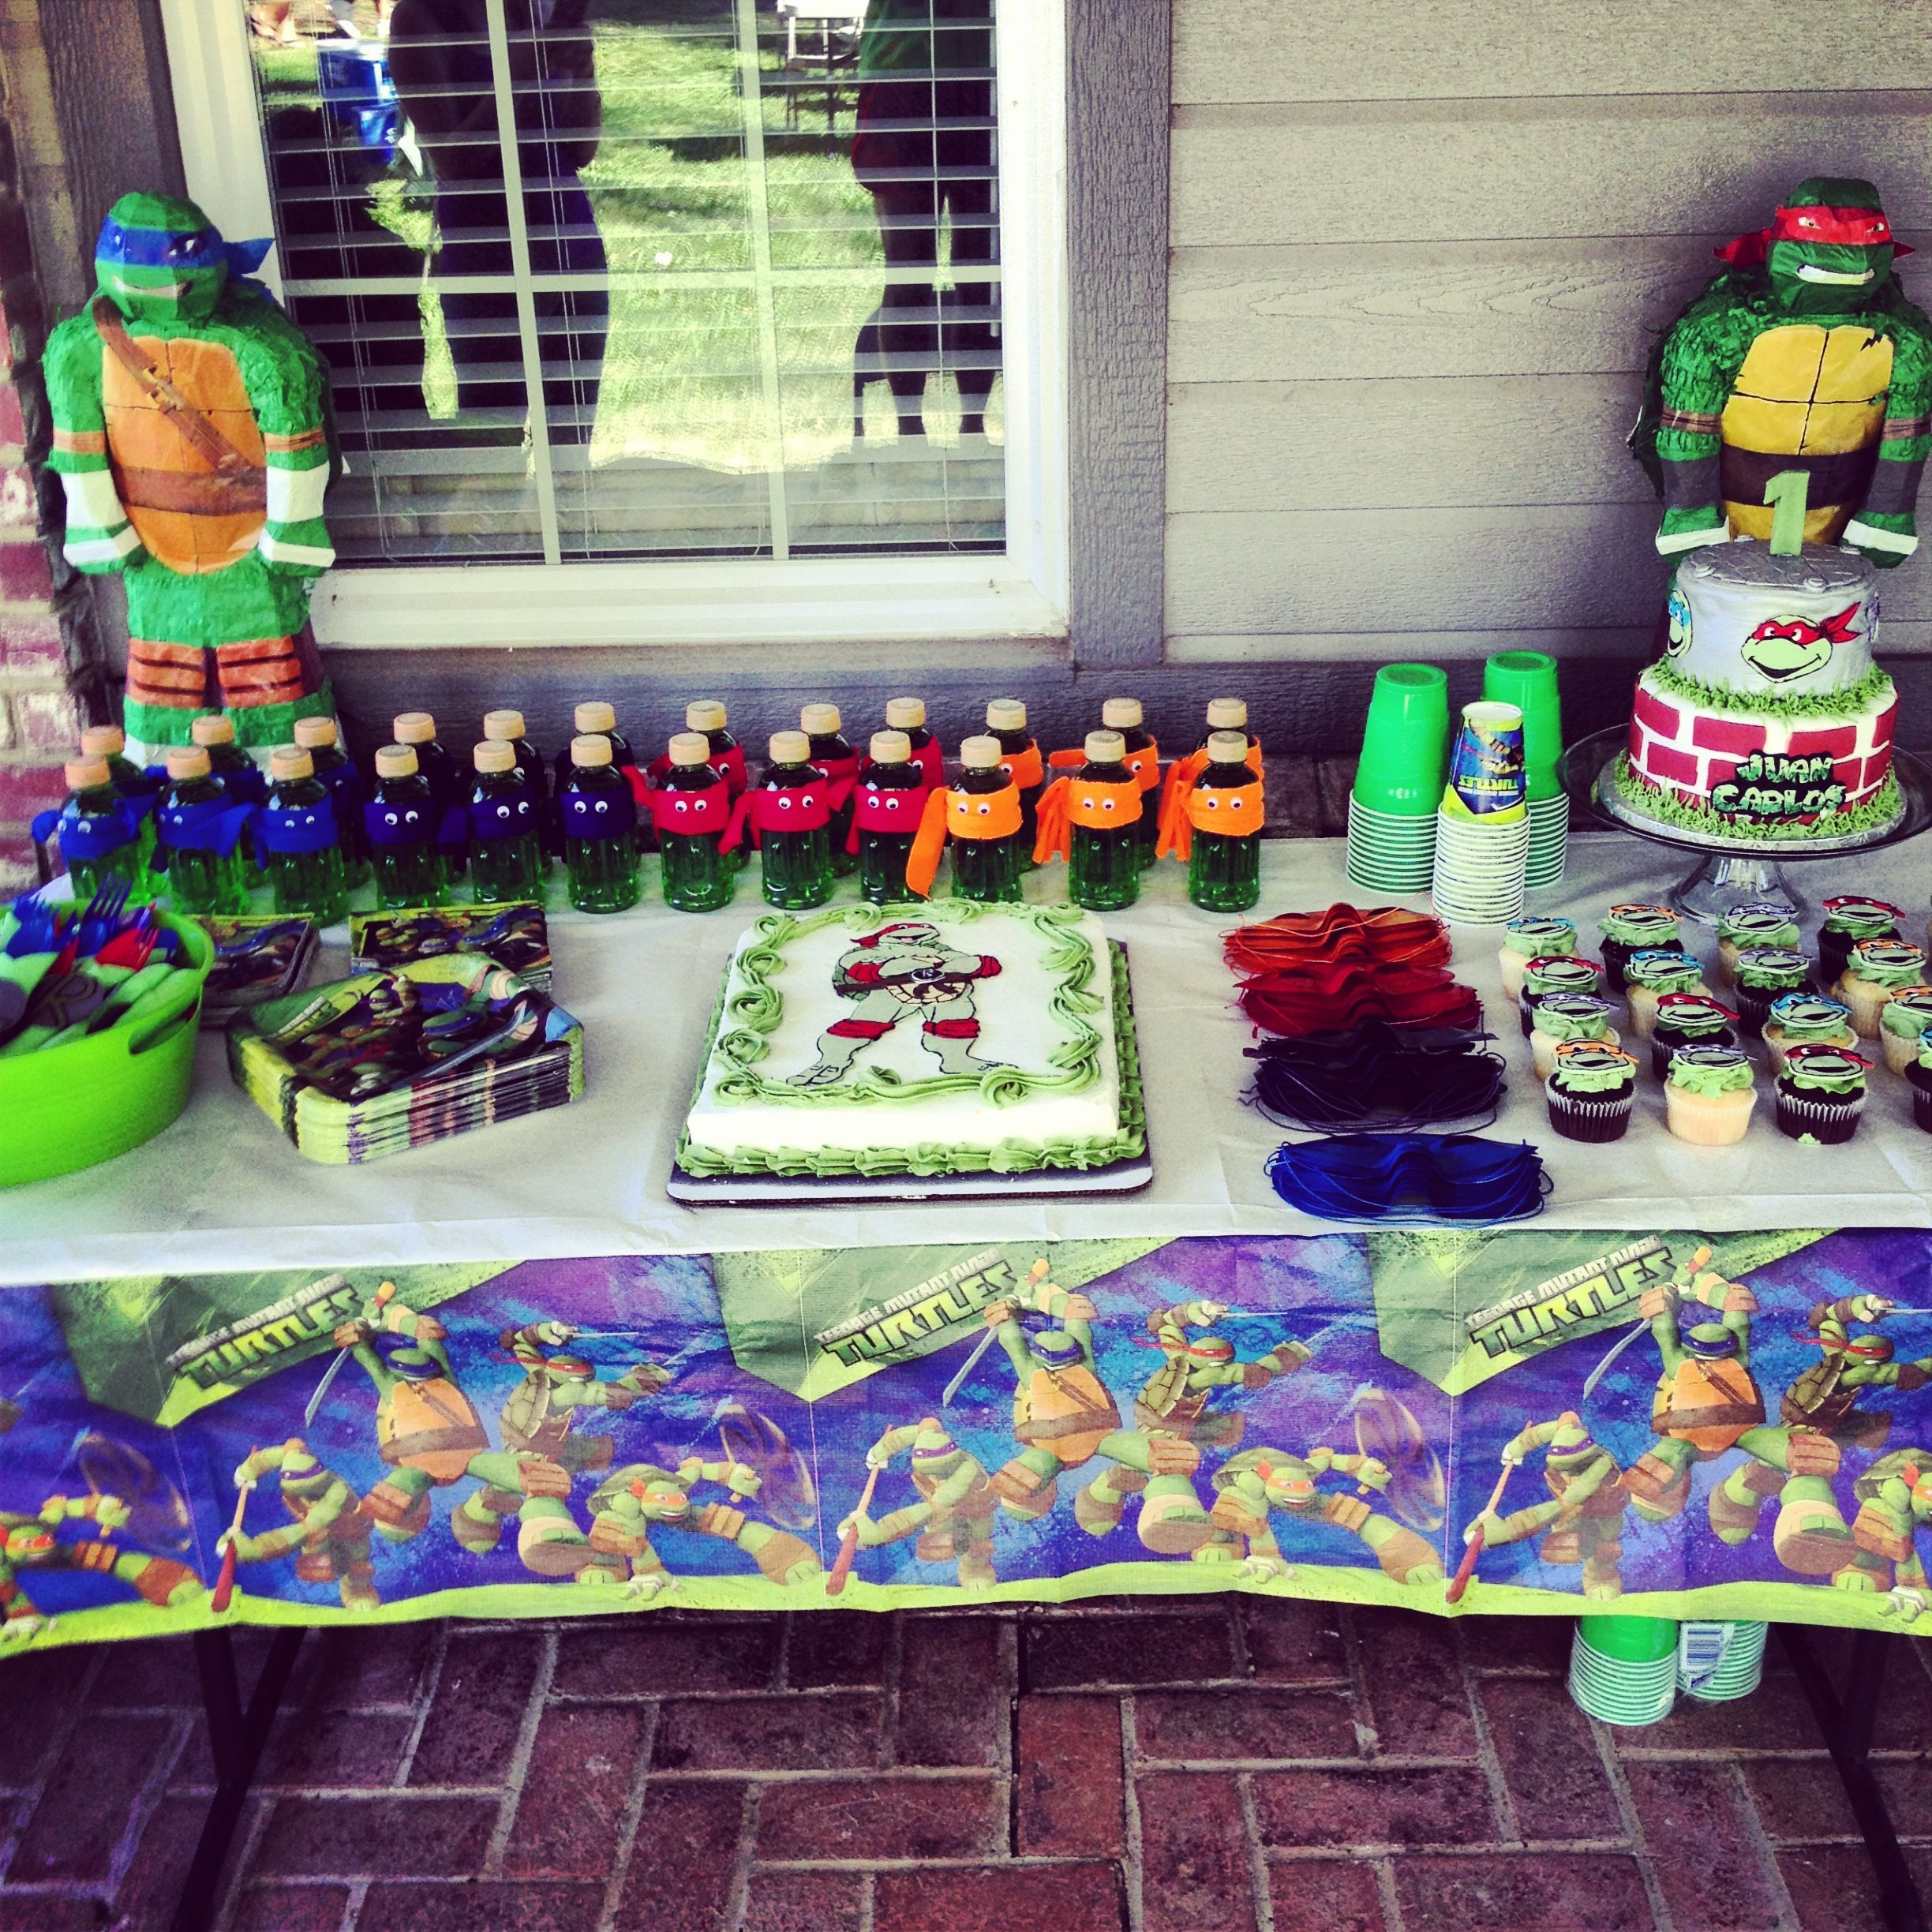 Ninja turtle party party ideas pinterest ninja for Tmnt decorations